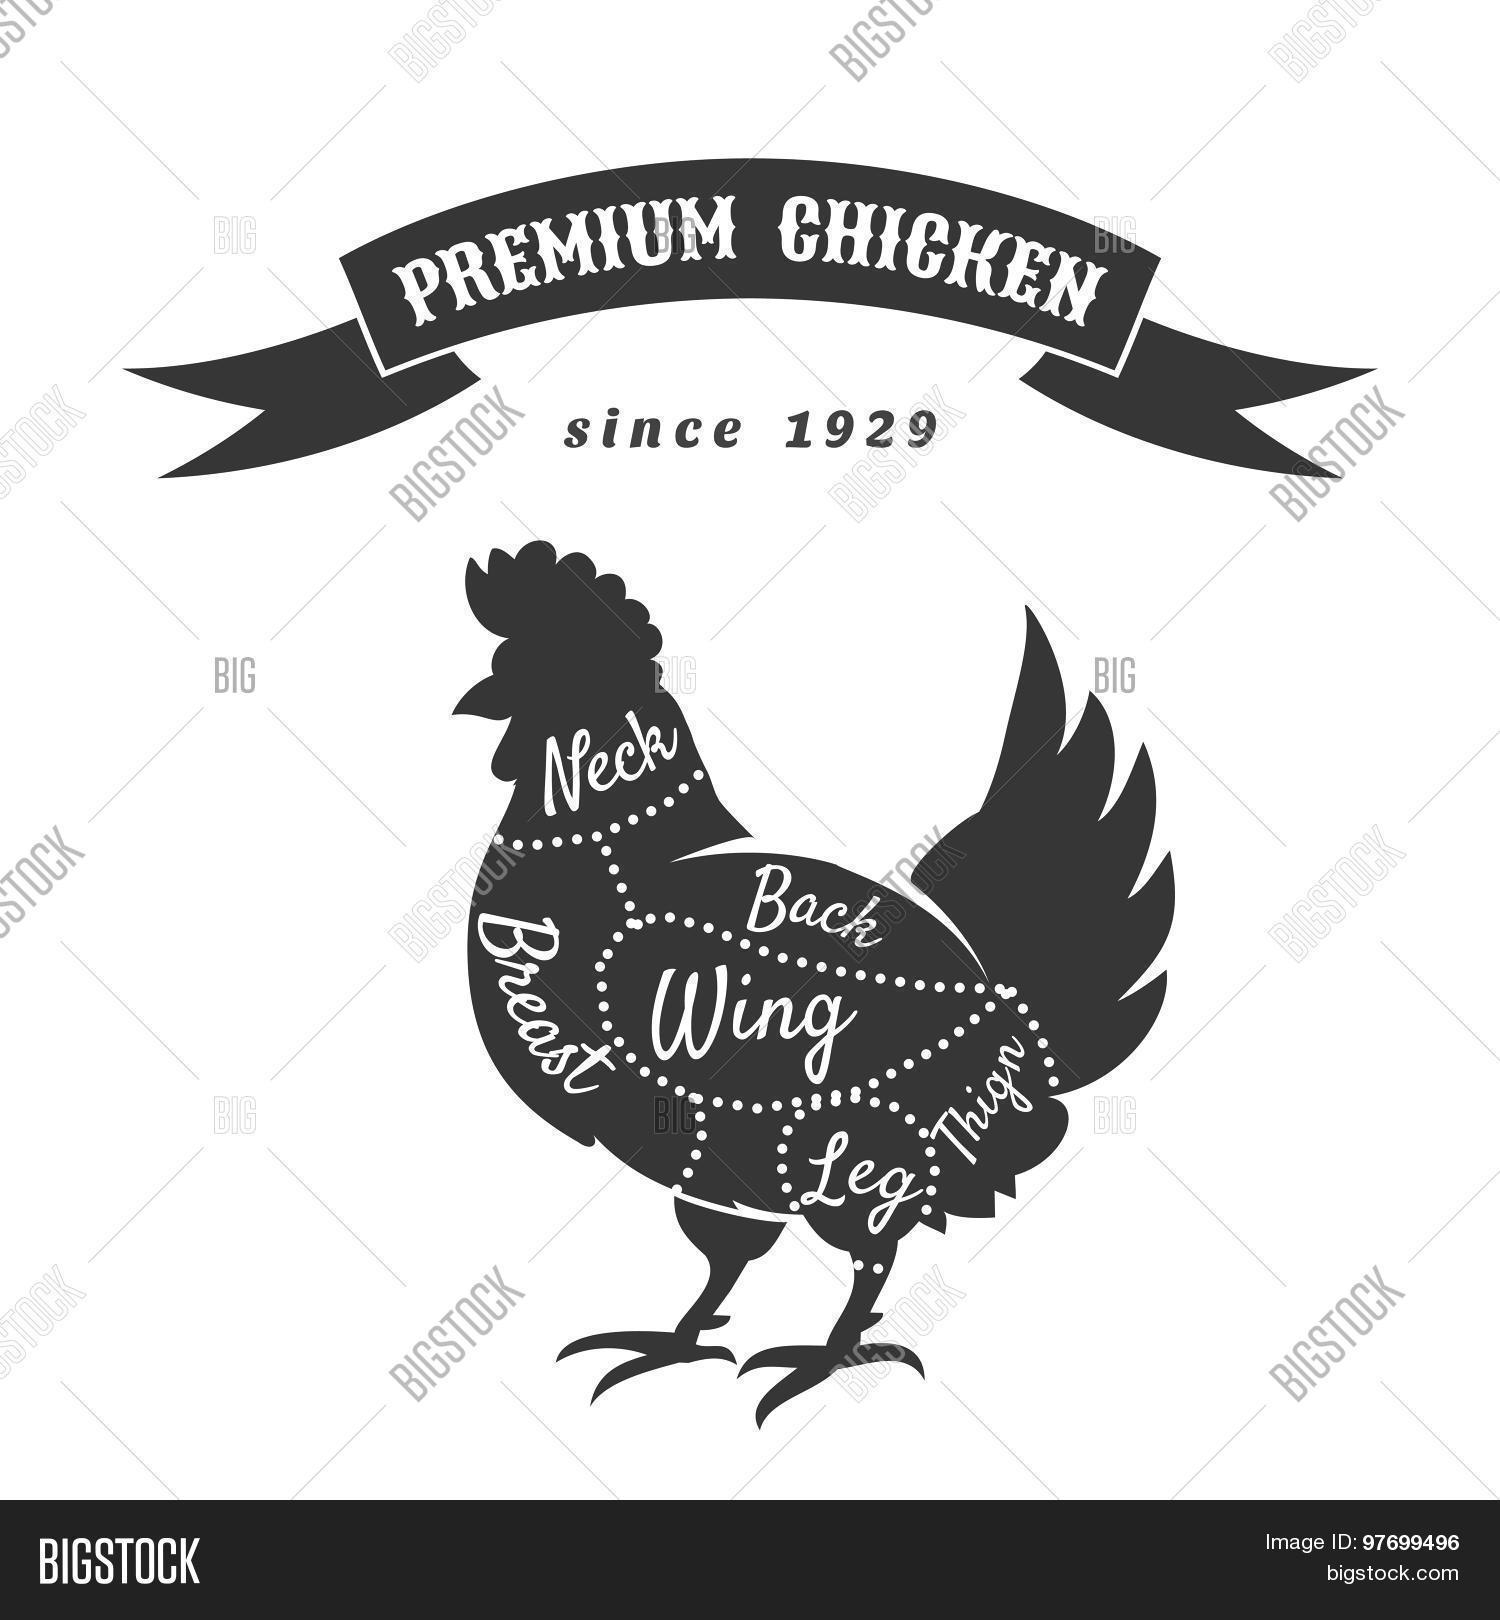 hight resolution of chicken meat cuts diagram farm food meat bird animal breast and leg wing and back vector illustration